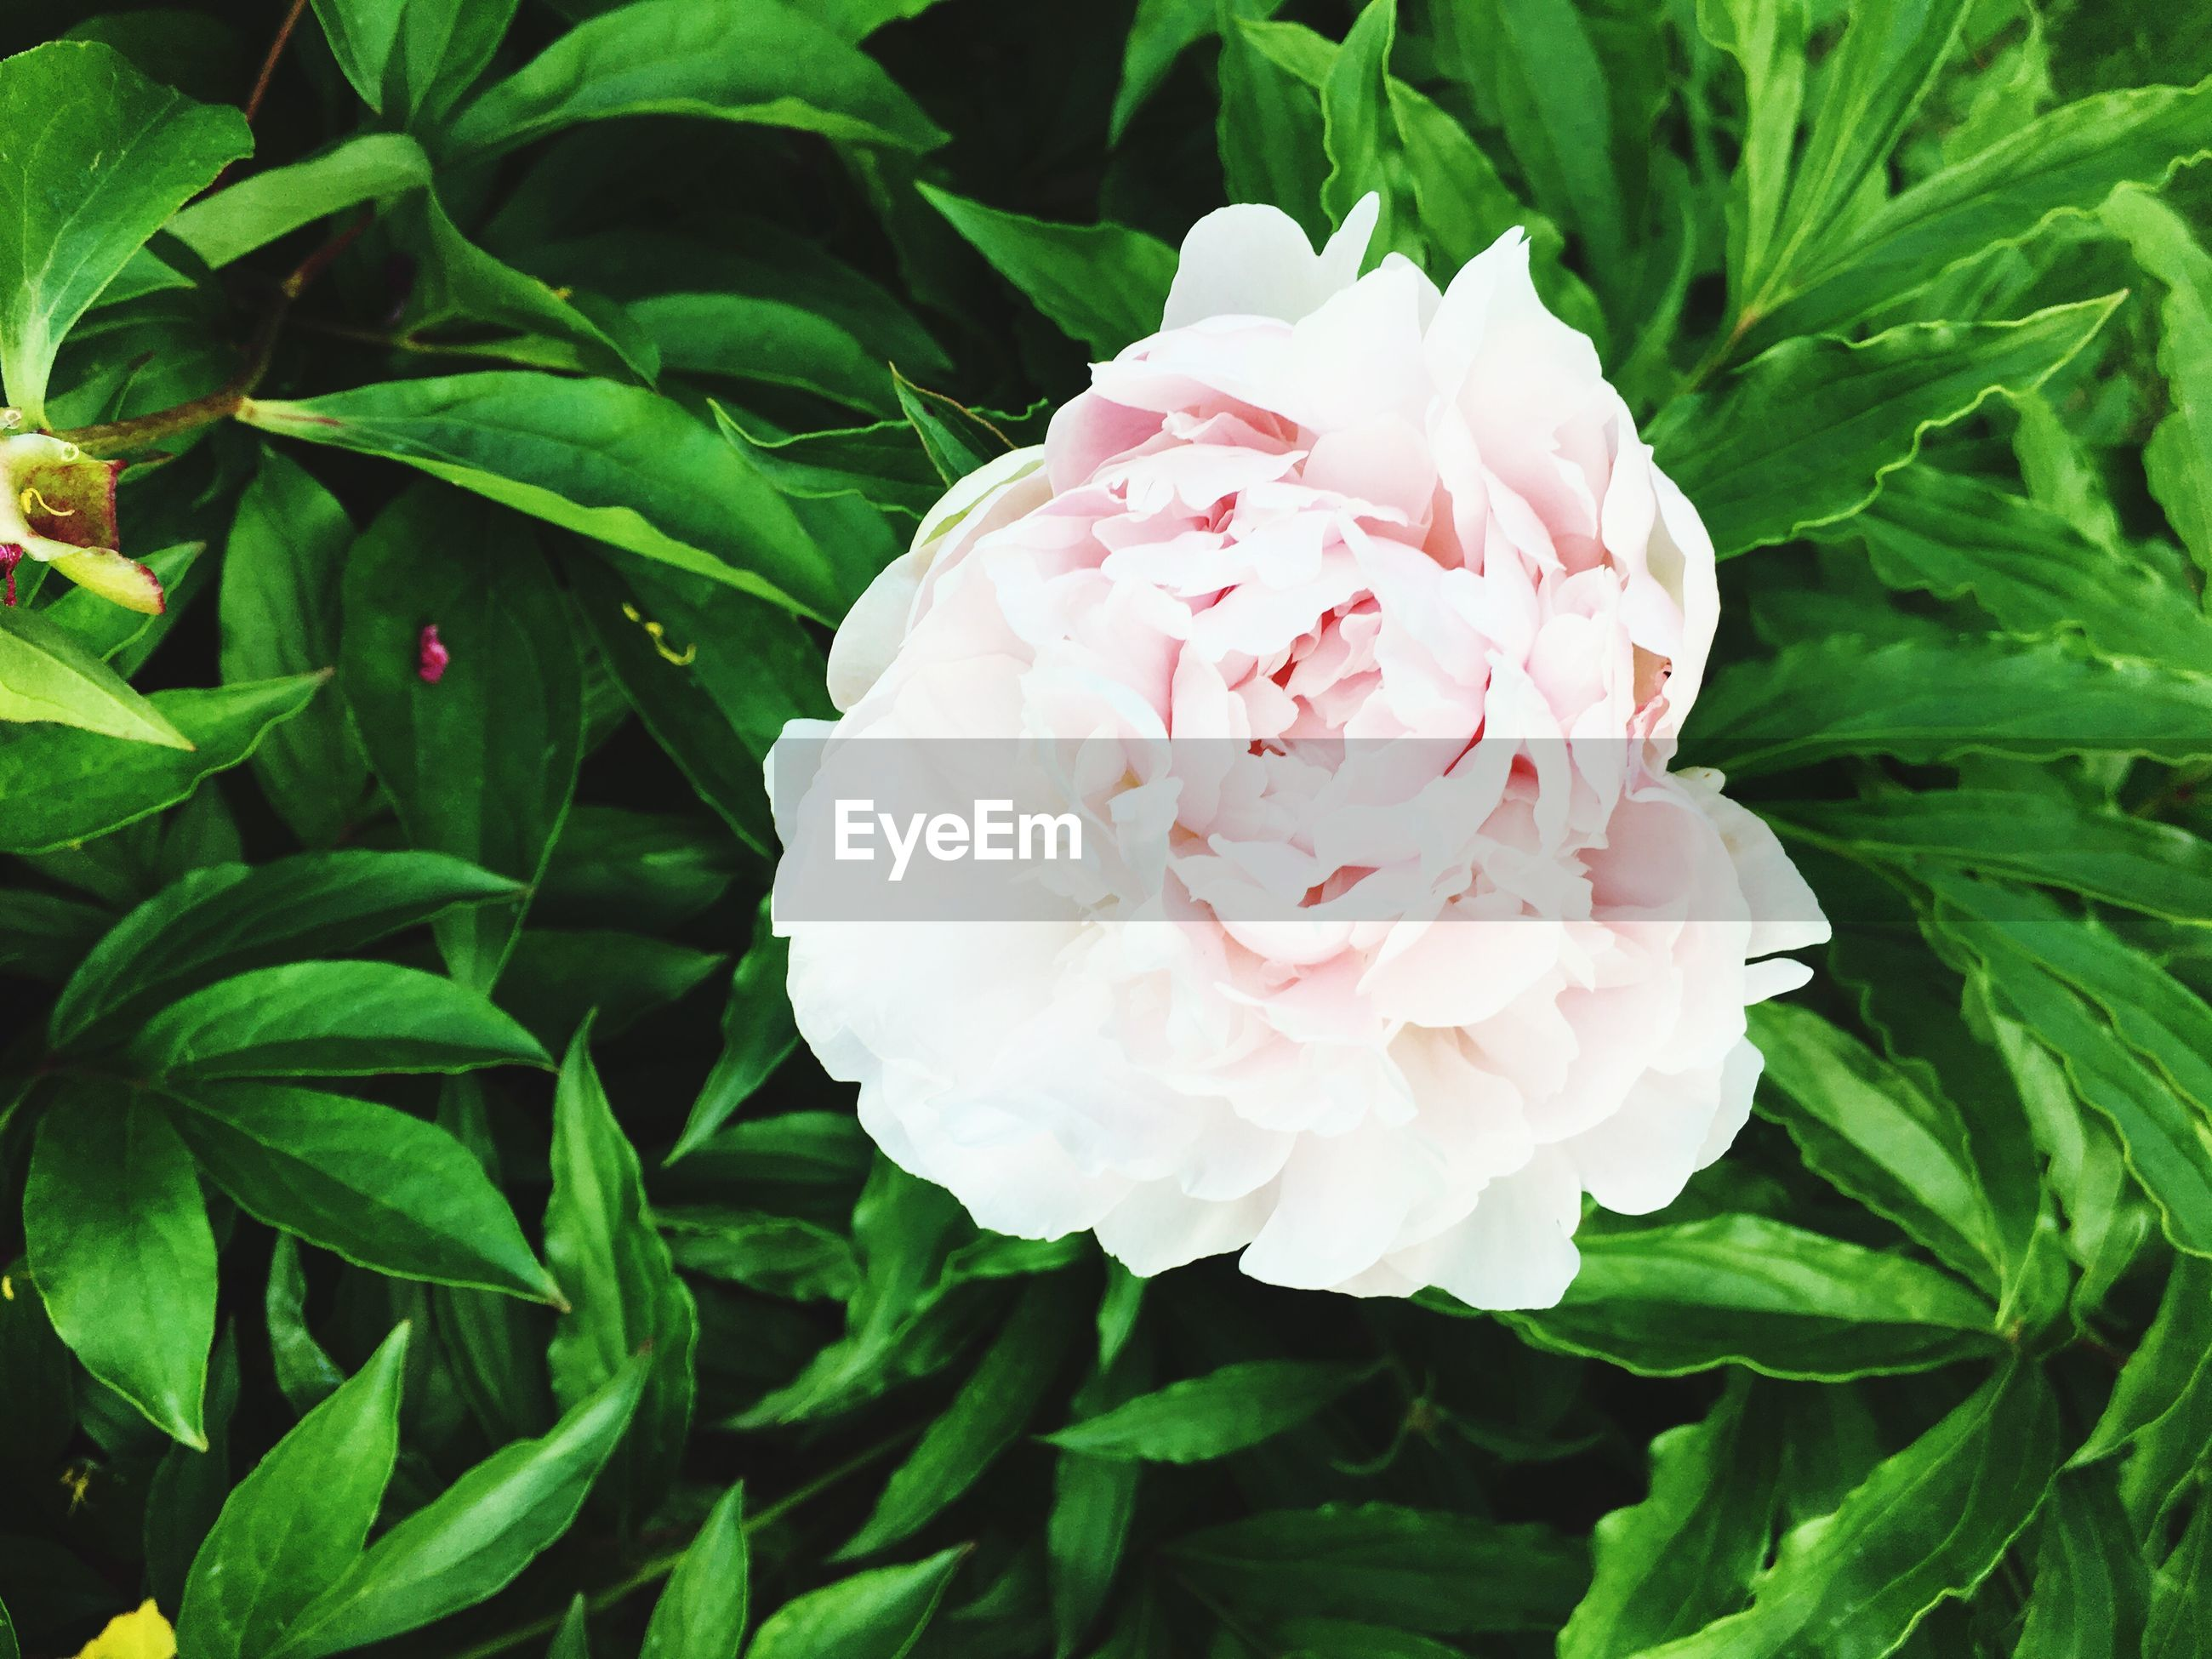 flower, freshness, fragility, petal, flower head, growth, beauty in nature, leaf, pink color, plant, blooming, close-up, nature, green color, rose - flower, in bloom, focus on foreground, blossom, outdoors, day, no people, botany, softness, selective focus, white